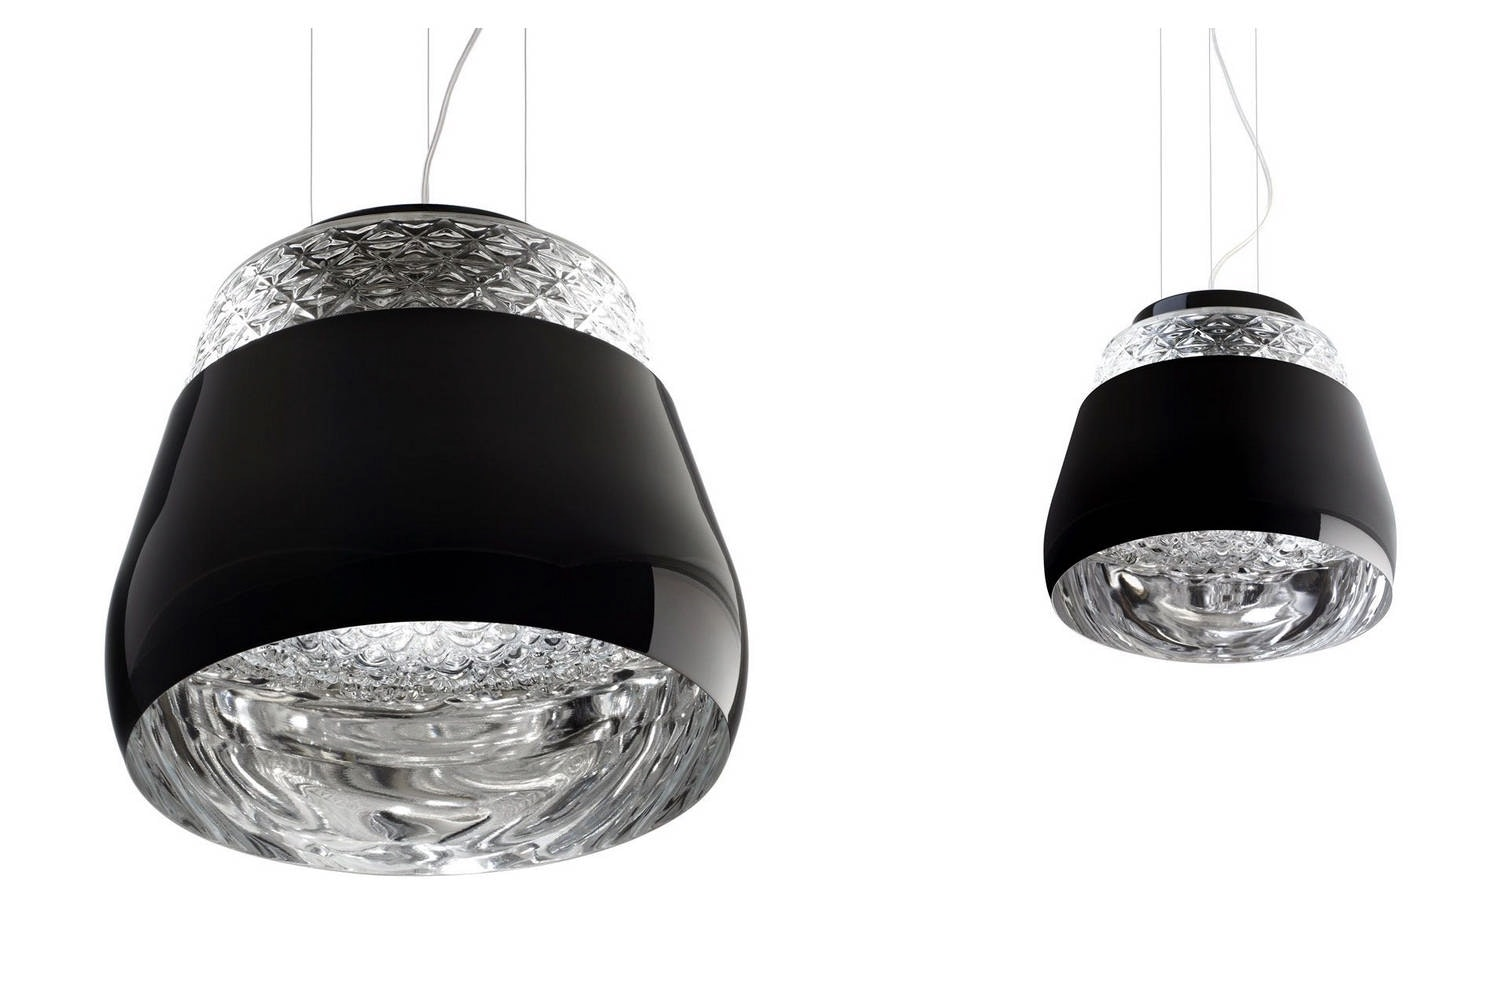 Valentine Suspension Lamp by Marcel Wanders for Moooi